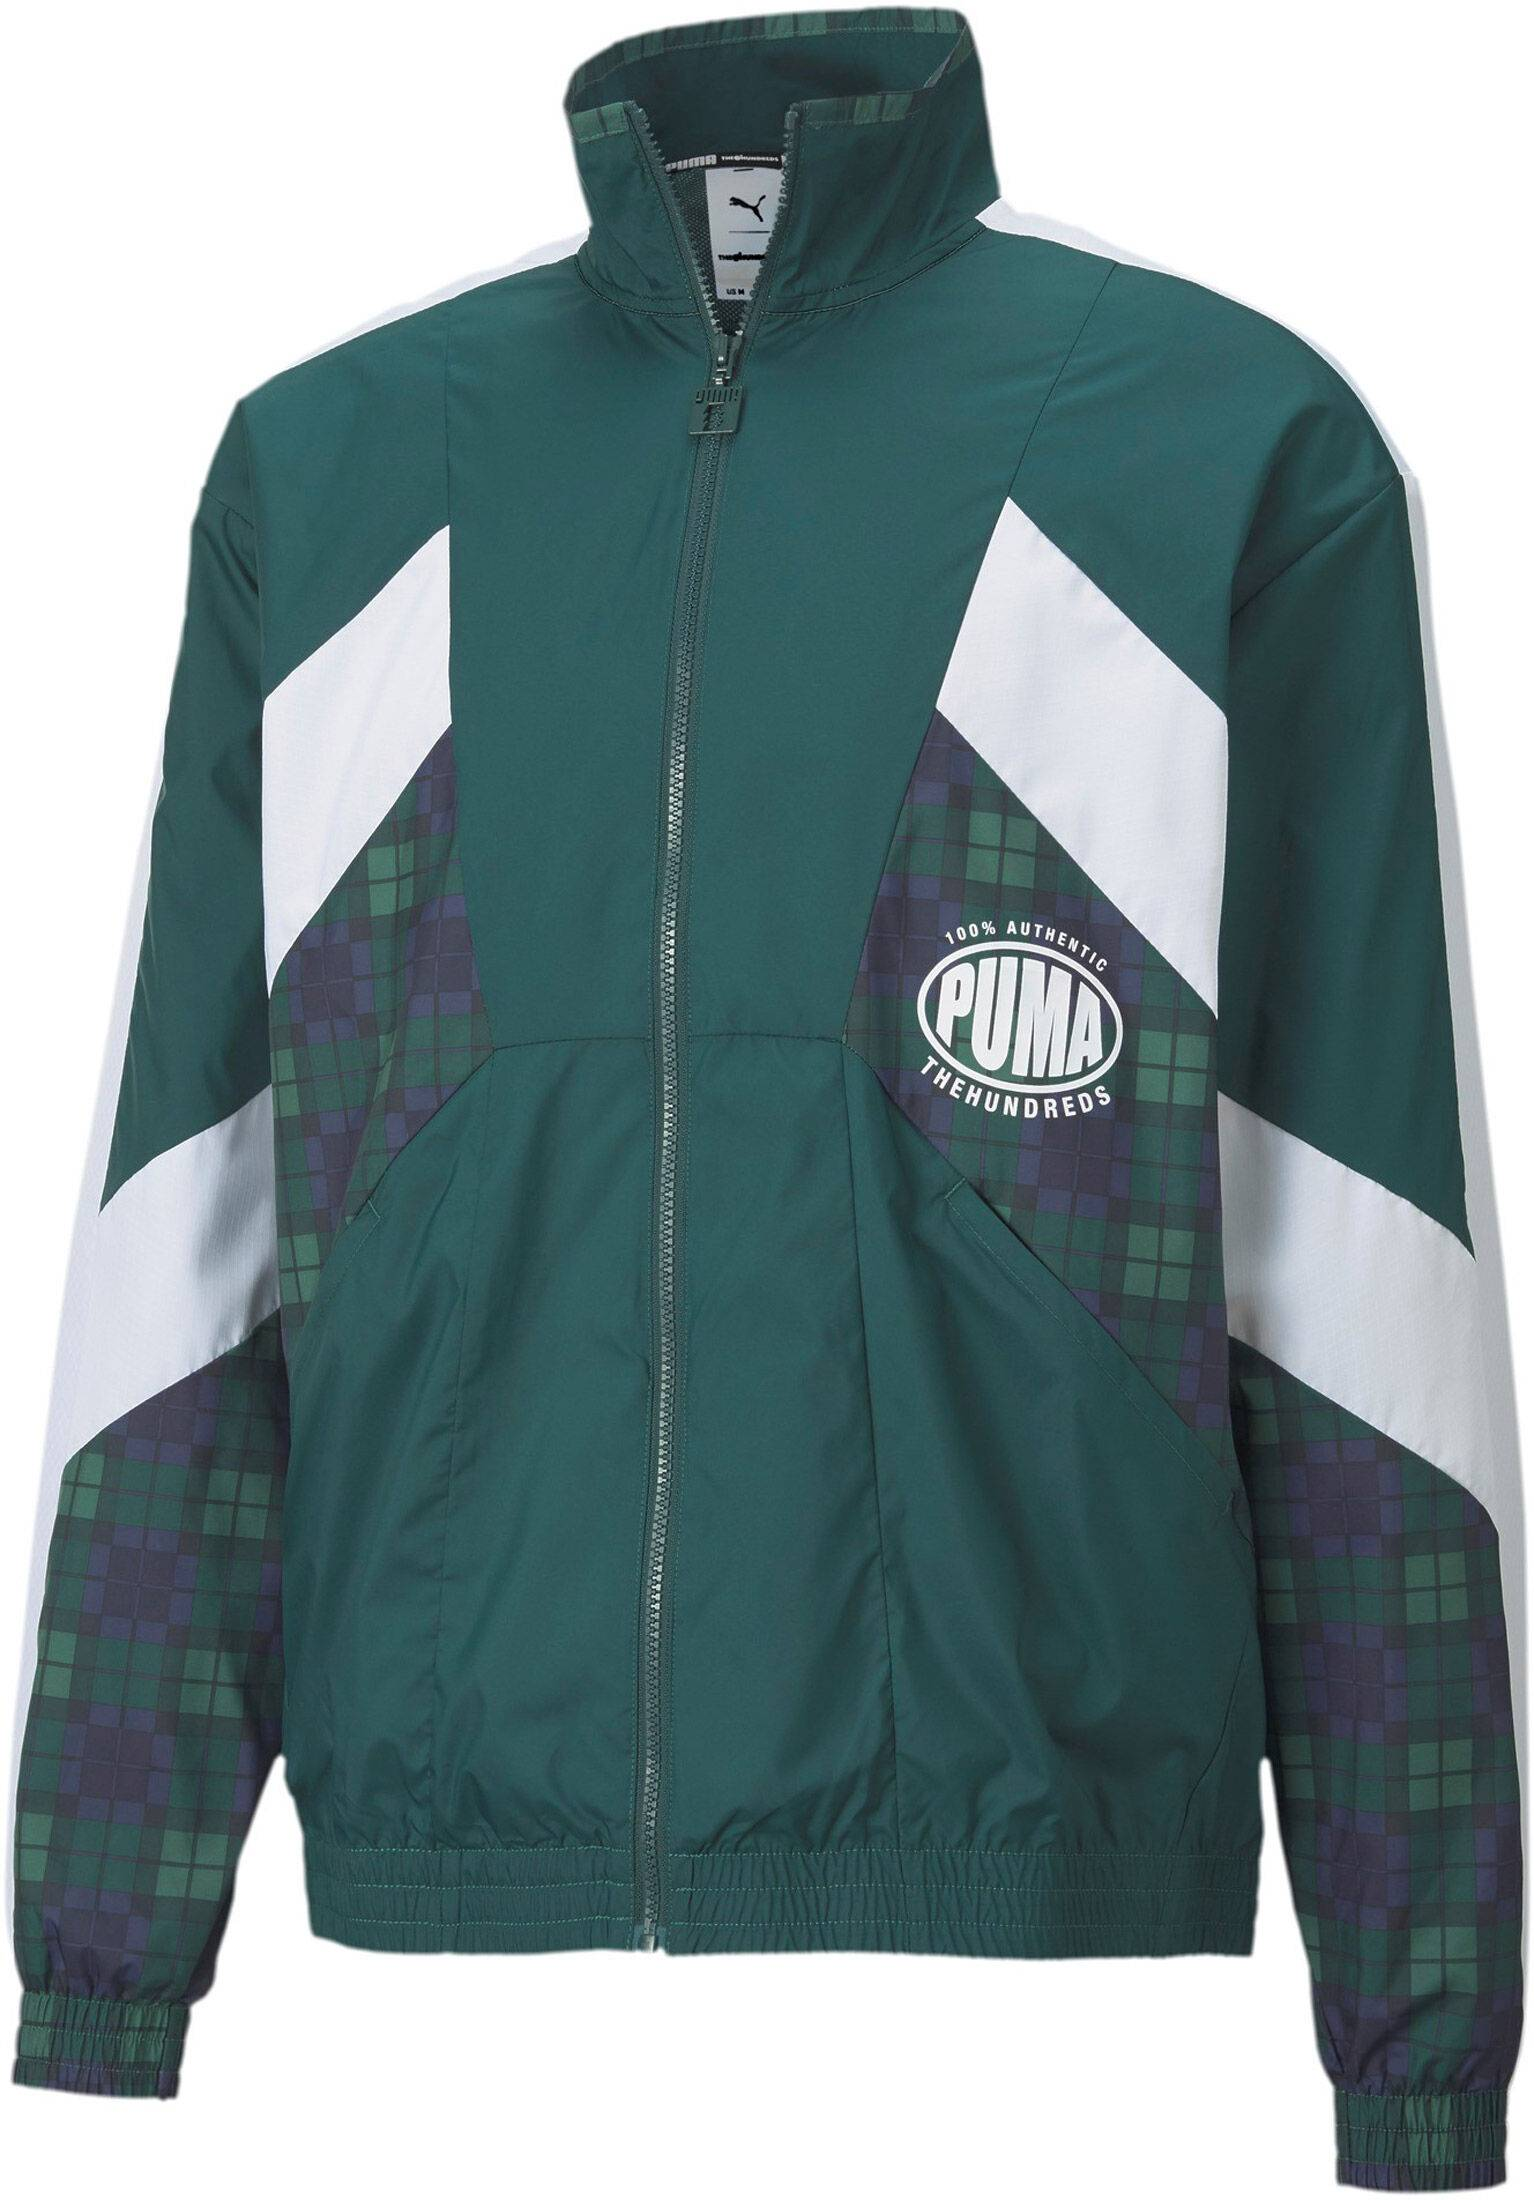 Puma The Hundreds x, taille XL, homme, vert